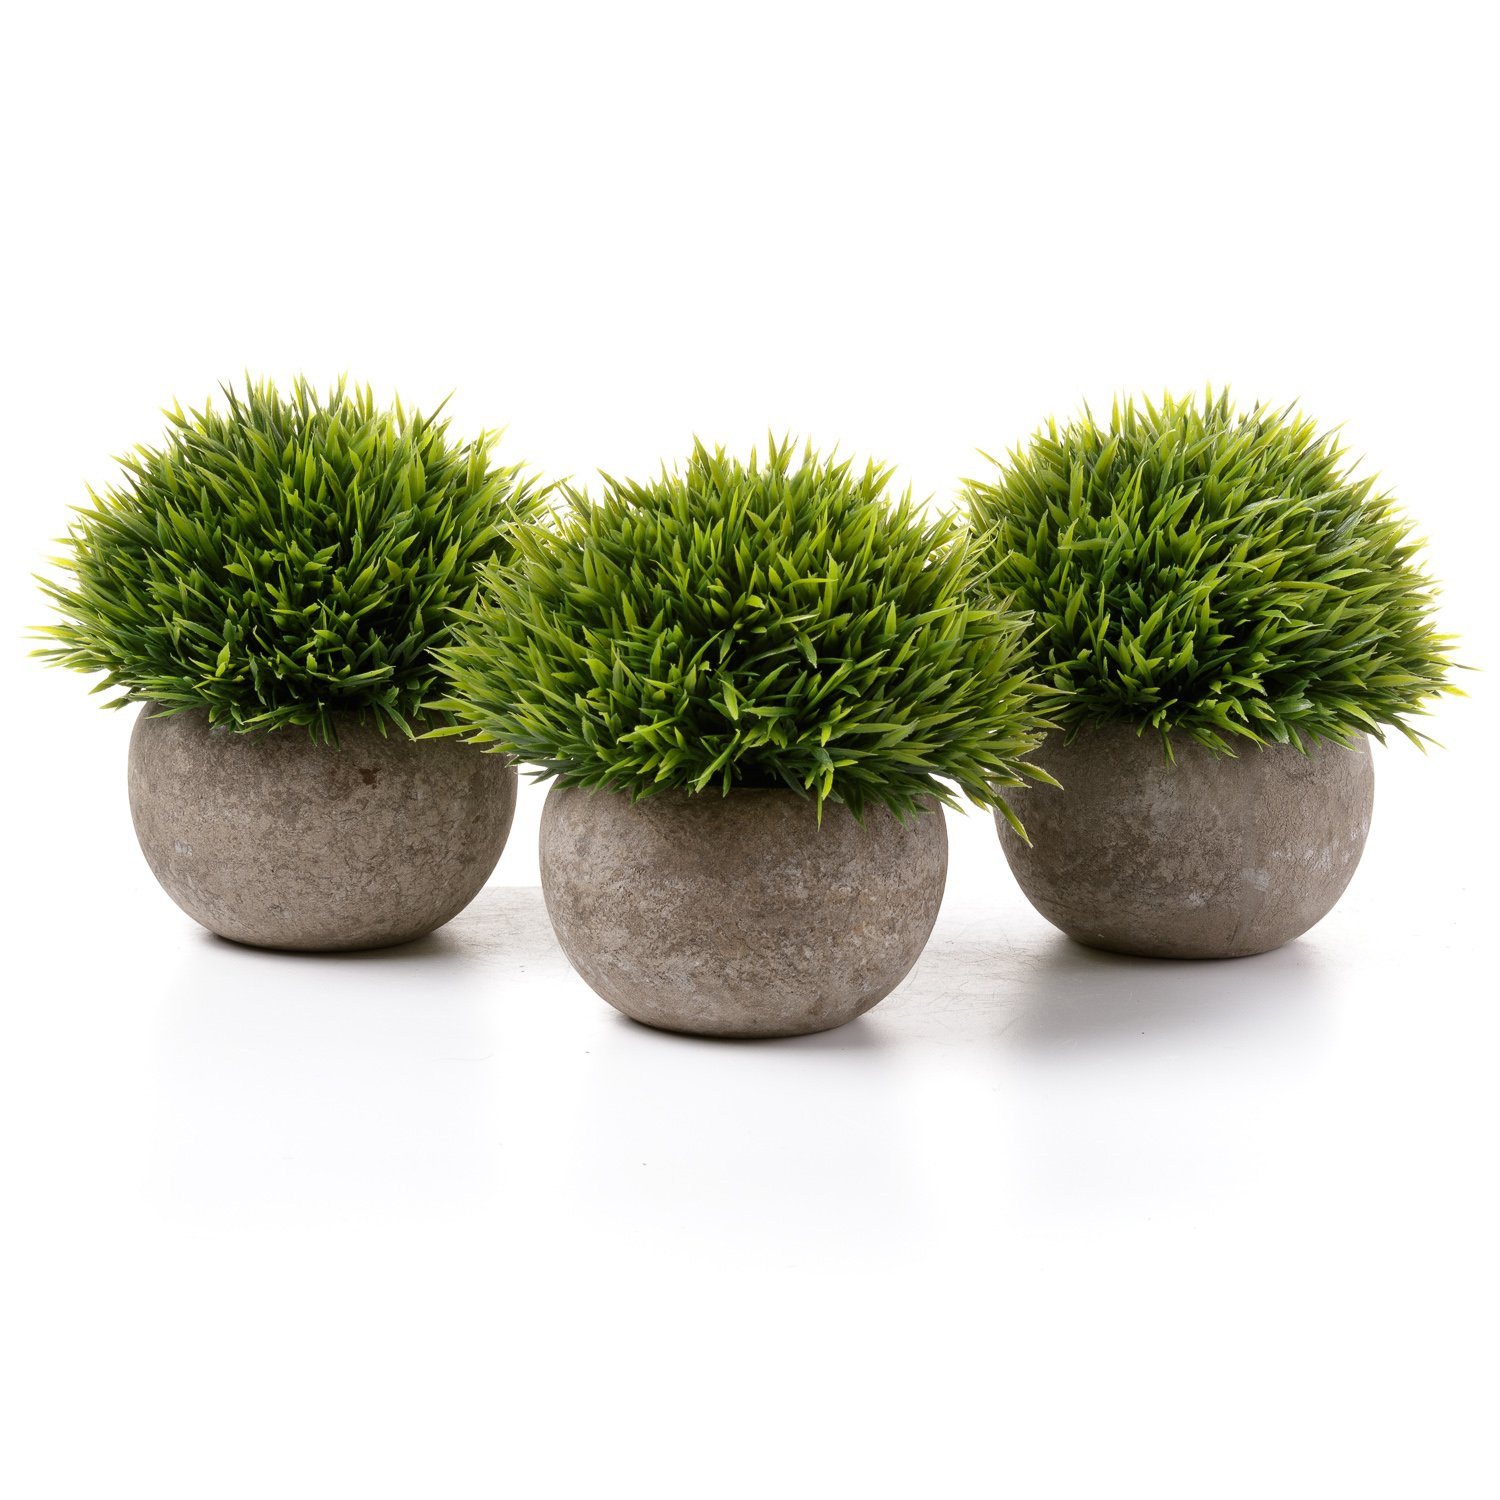 T4U Plastic Artificial Plants Potted Green Plants Multi-Layer Grass for Home/Office Decor